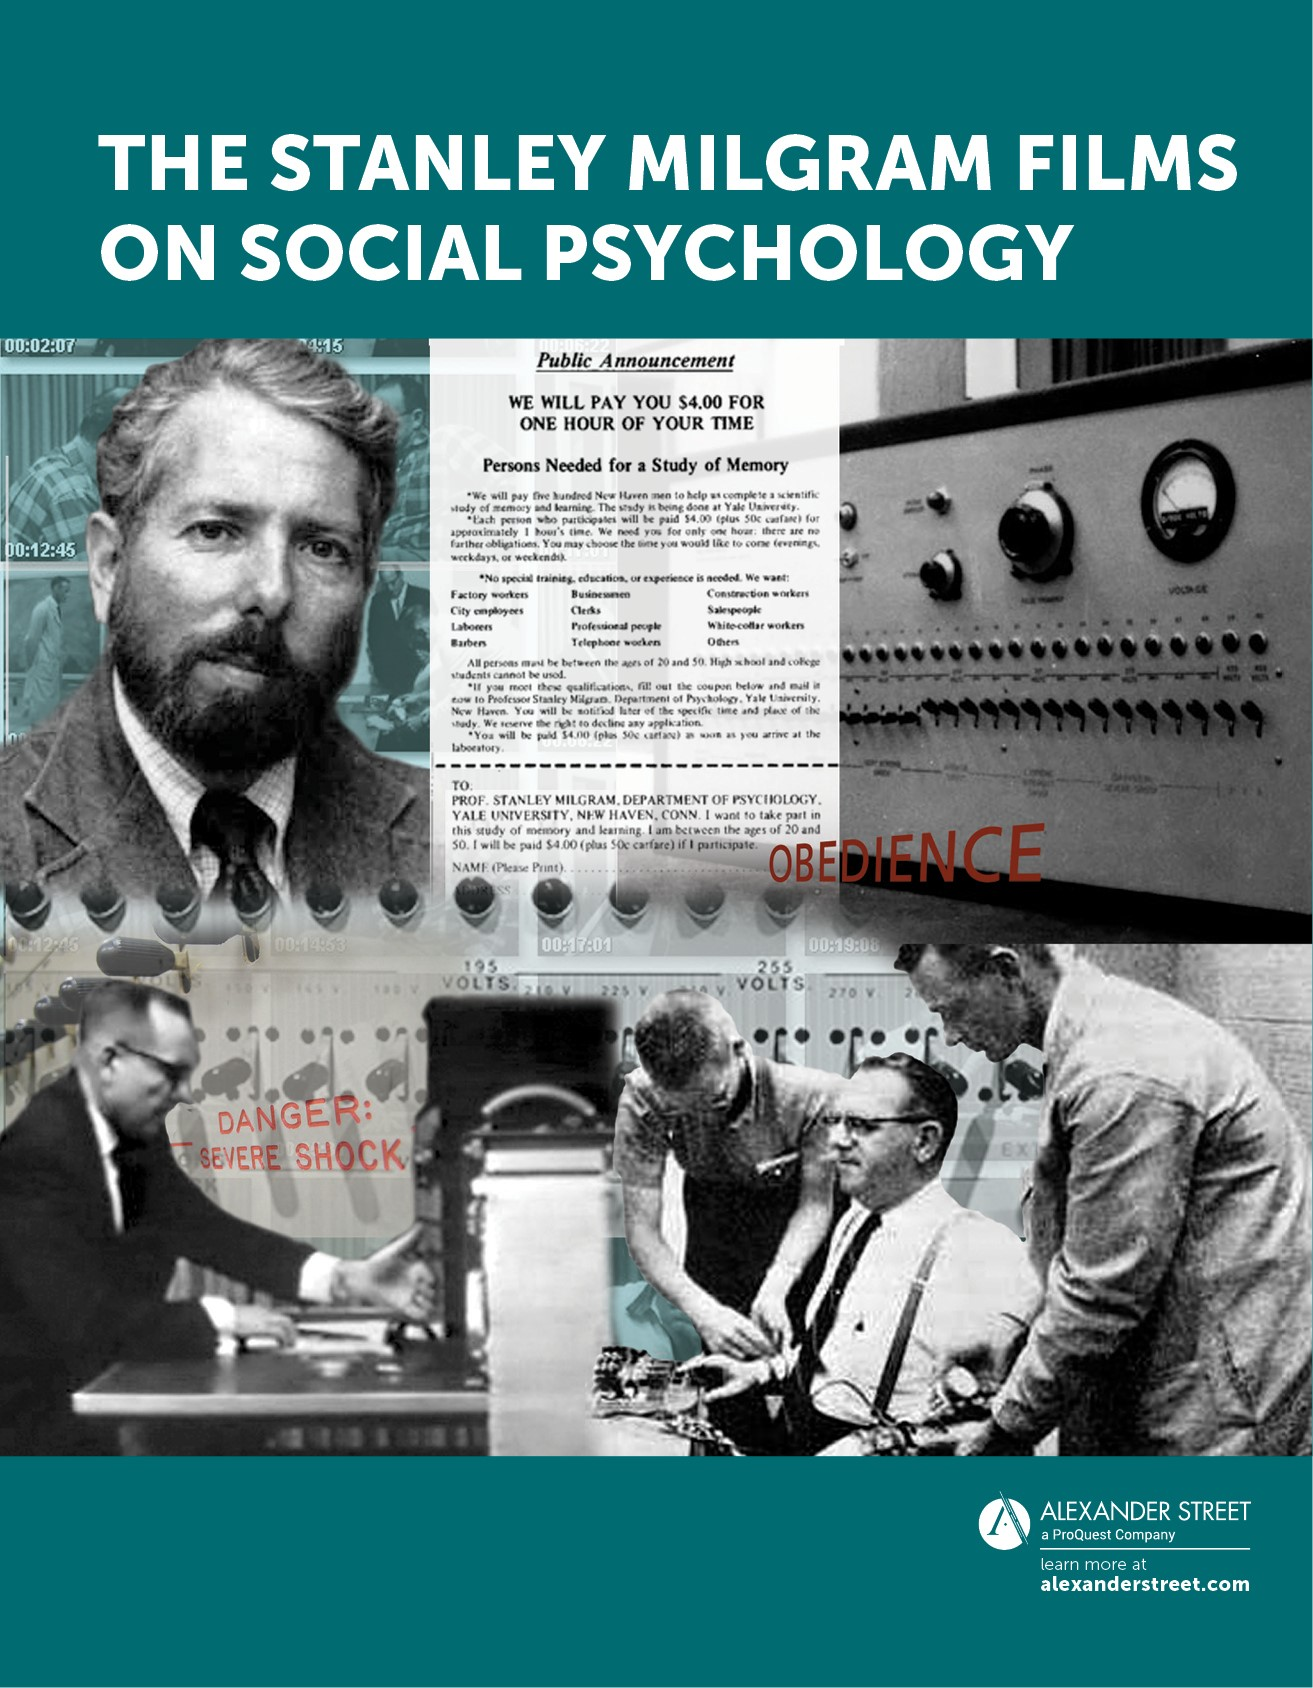 Stanley Milgram Films on Social Psychology